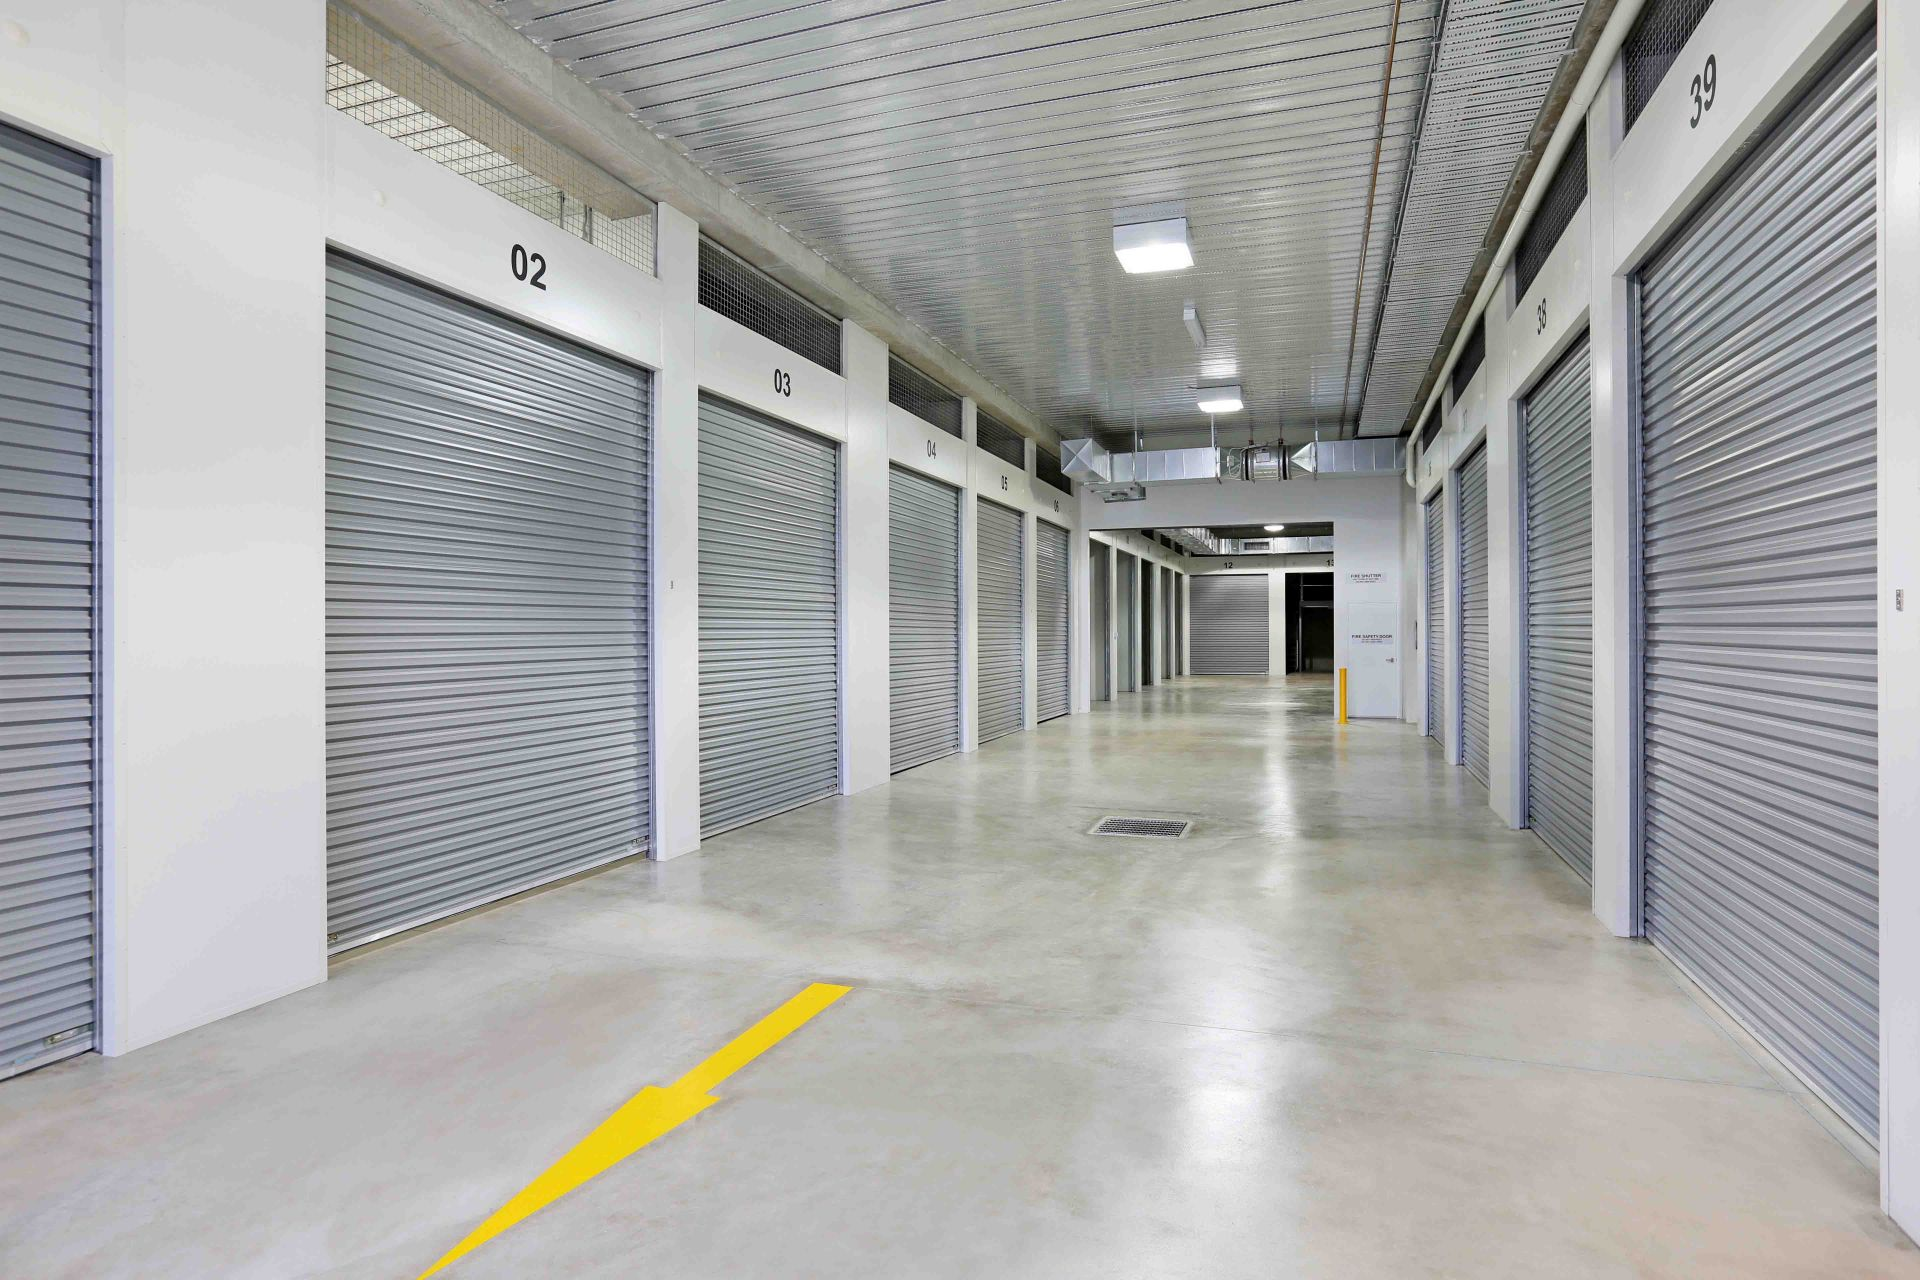 STORAGE UNIT $136,000.00 + GST… THE PRICE IS RIGHT!!